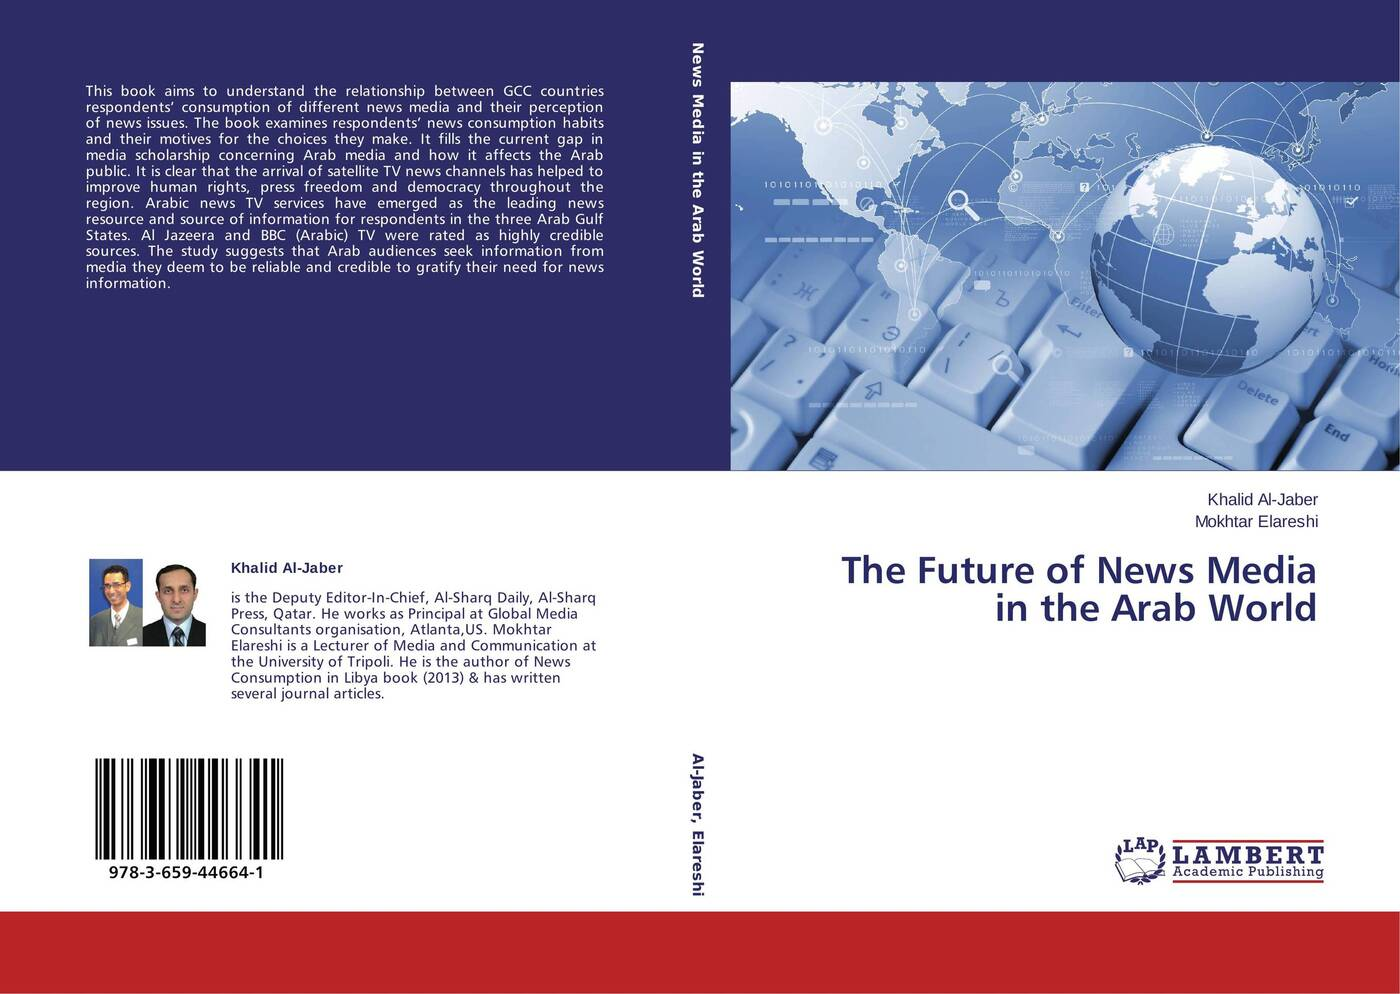 Khalid Al-Jaber and Mokhtar Elareshi The Future of News Media in the Arab World